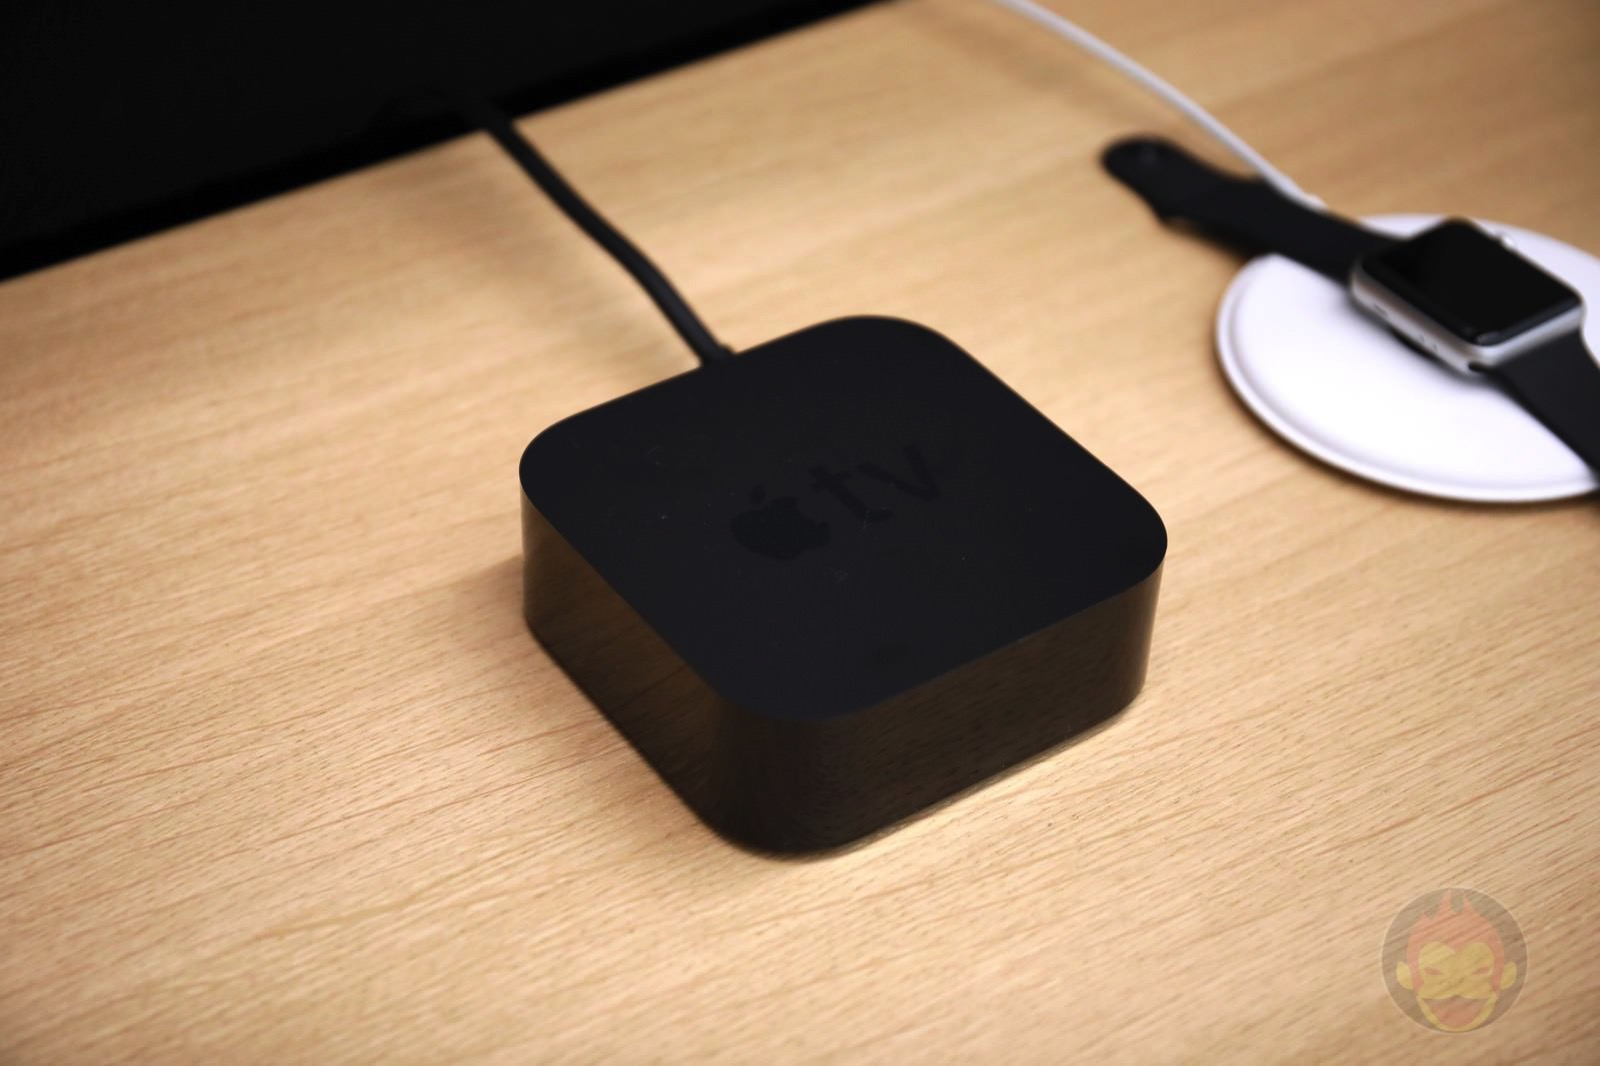 Apple-TV-4K-01.JPG